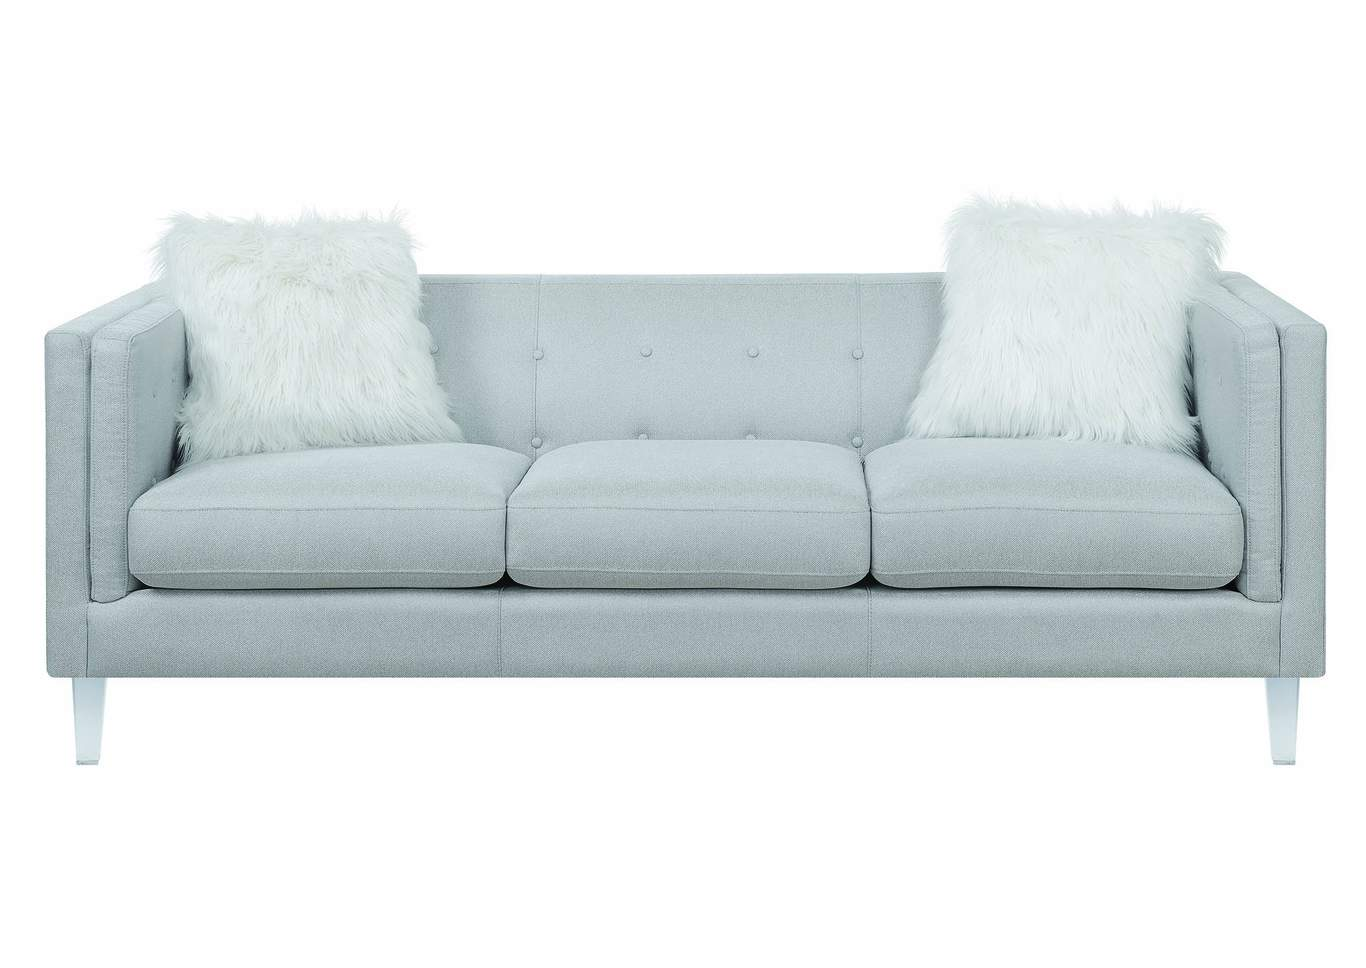 Hemet Light Grey Sofa,Coaster Furniture